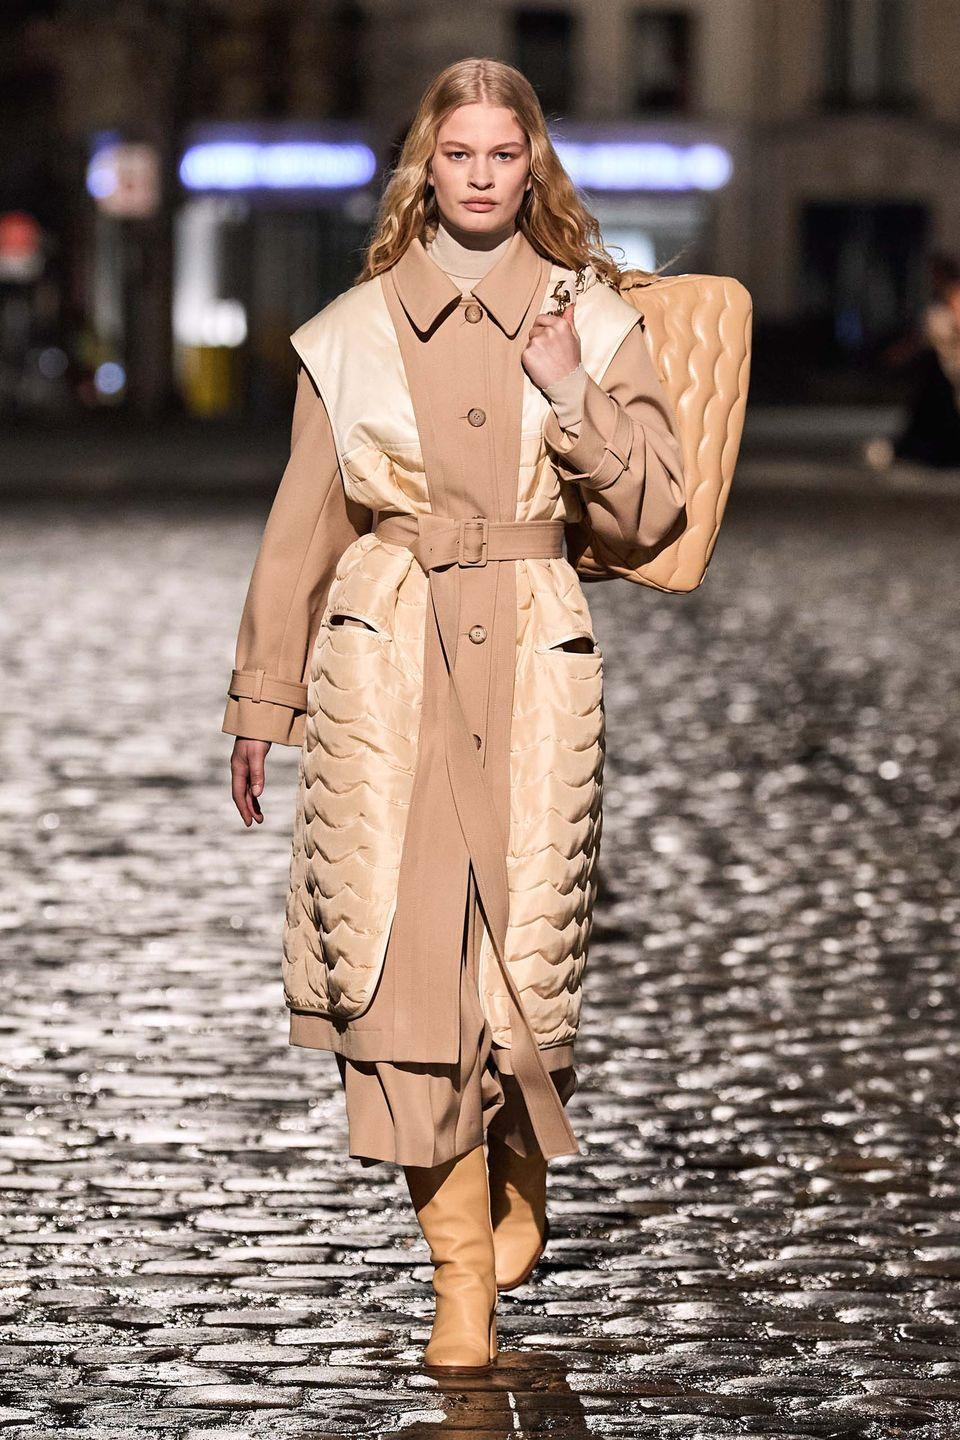 "<p>Gabriela Hearst presented her debut collection as creative director of Chloé on the streets of Paris on the centennial anniversary of founder Gaby Aghion's birth. </p><p>""From Gaby to Gabi, two ambitious women interpreting femininity in the context of their time,"" described the show notes. ""And from Gabi to Gaby, the reassurance that, 'Your House is in good hands.'""</p><p>To Hearst, the meaning of Chloé – 'blooming' in Greek – resonated strongly in terms of working towards the greater good and improving on the sustainability credentials of the fashion house. This was clear to see not just in the designs –""in every piece, a sense of purpose"" – but also in the new timeline of sustainability objectives in place, with this first collection already four times more sustainable than the one presented this time last year. The changes include: eliminating virgin synthetic fibre (polyester) or artificial cellulosic fibre (viscose) and sourcing recycled, reused and organic denim. More than 50 per cent of silk comes from organic agriculture and more than 80 per cent of cashmere yarn for knitwear is recycled, while the bags are lined in natural linen.<br></p>"